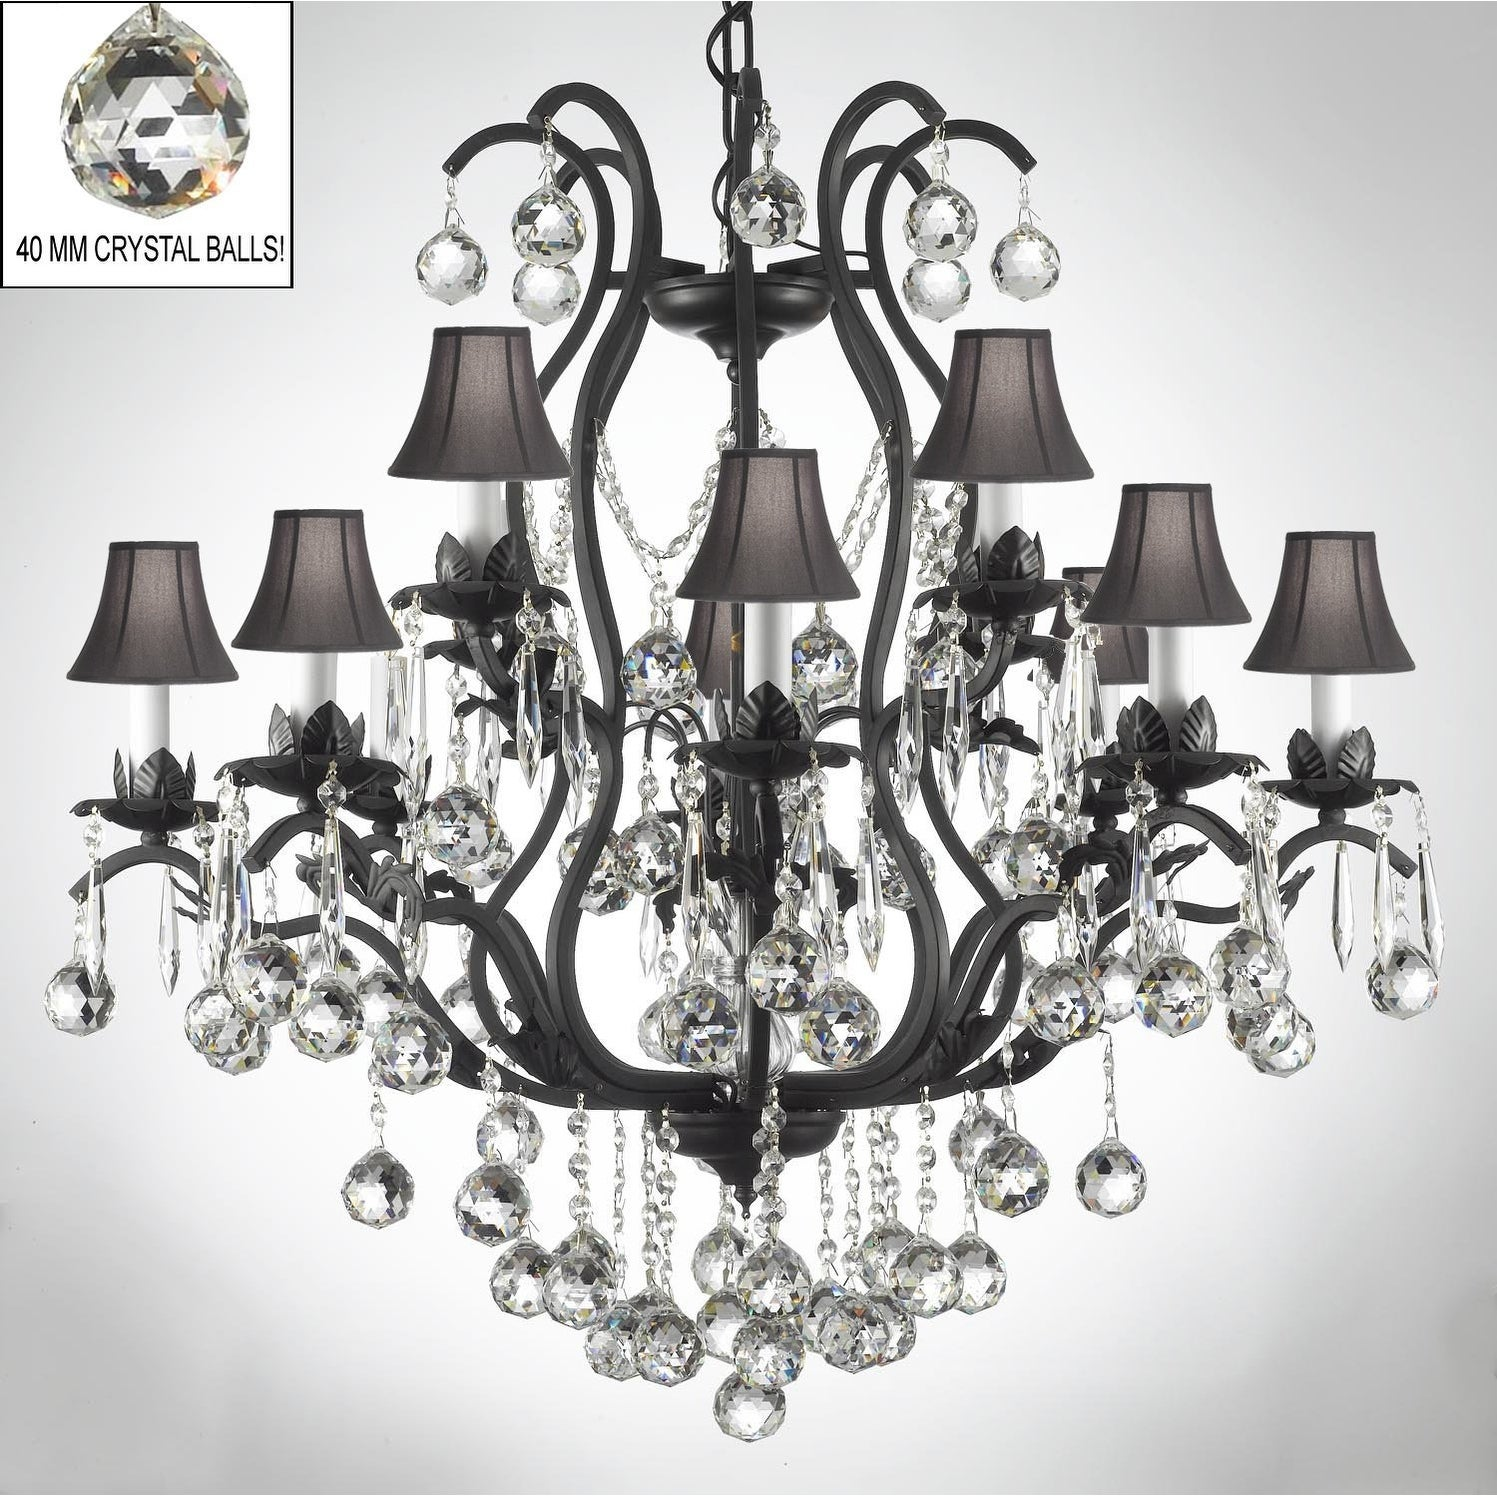 Swarovski Elements Crystal Trimmed Wrought Iron Chandelier Lighting With Faceted Blac On Free Today